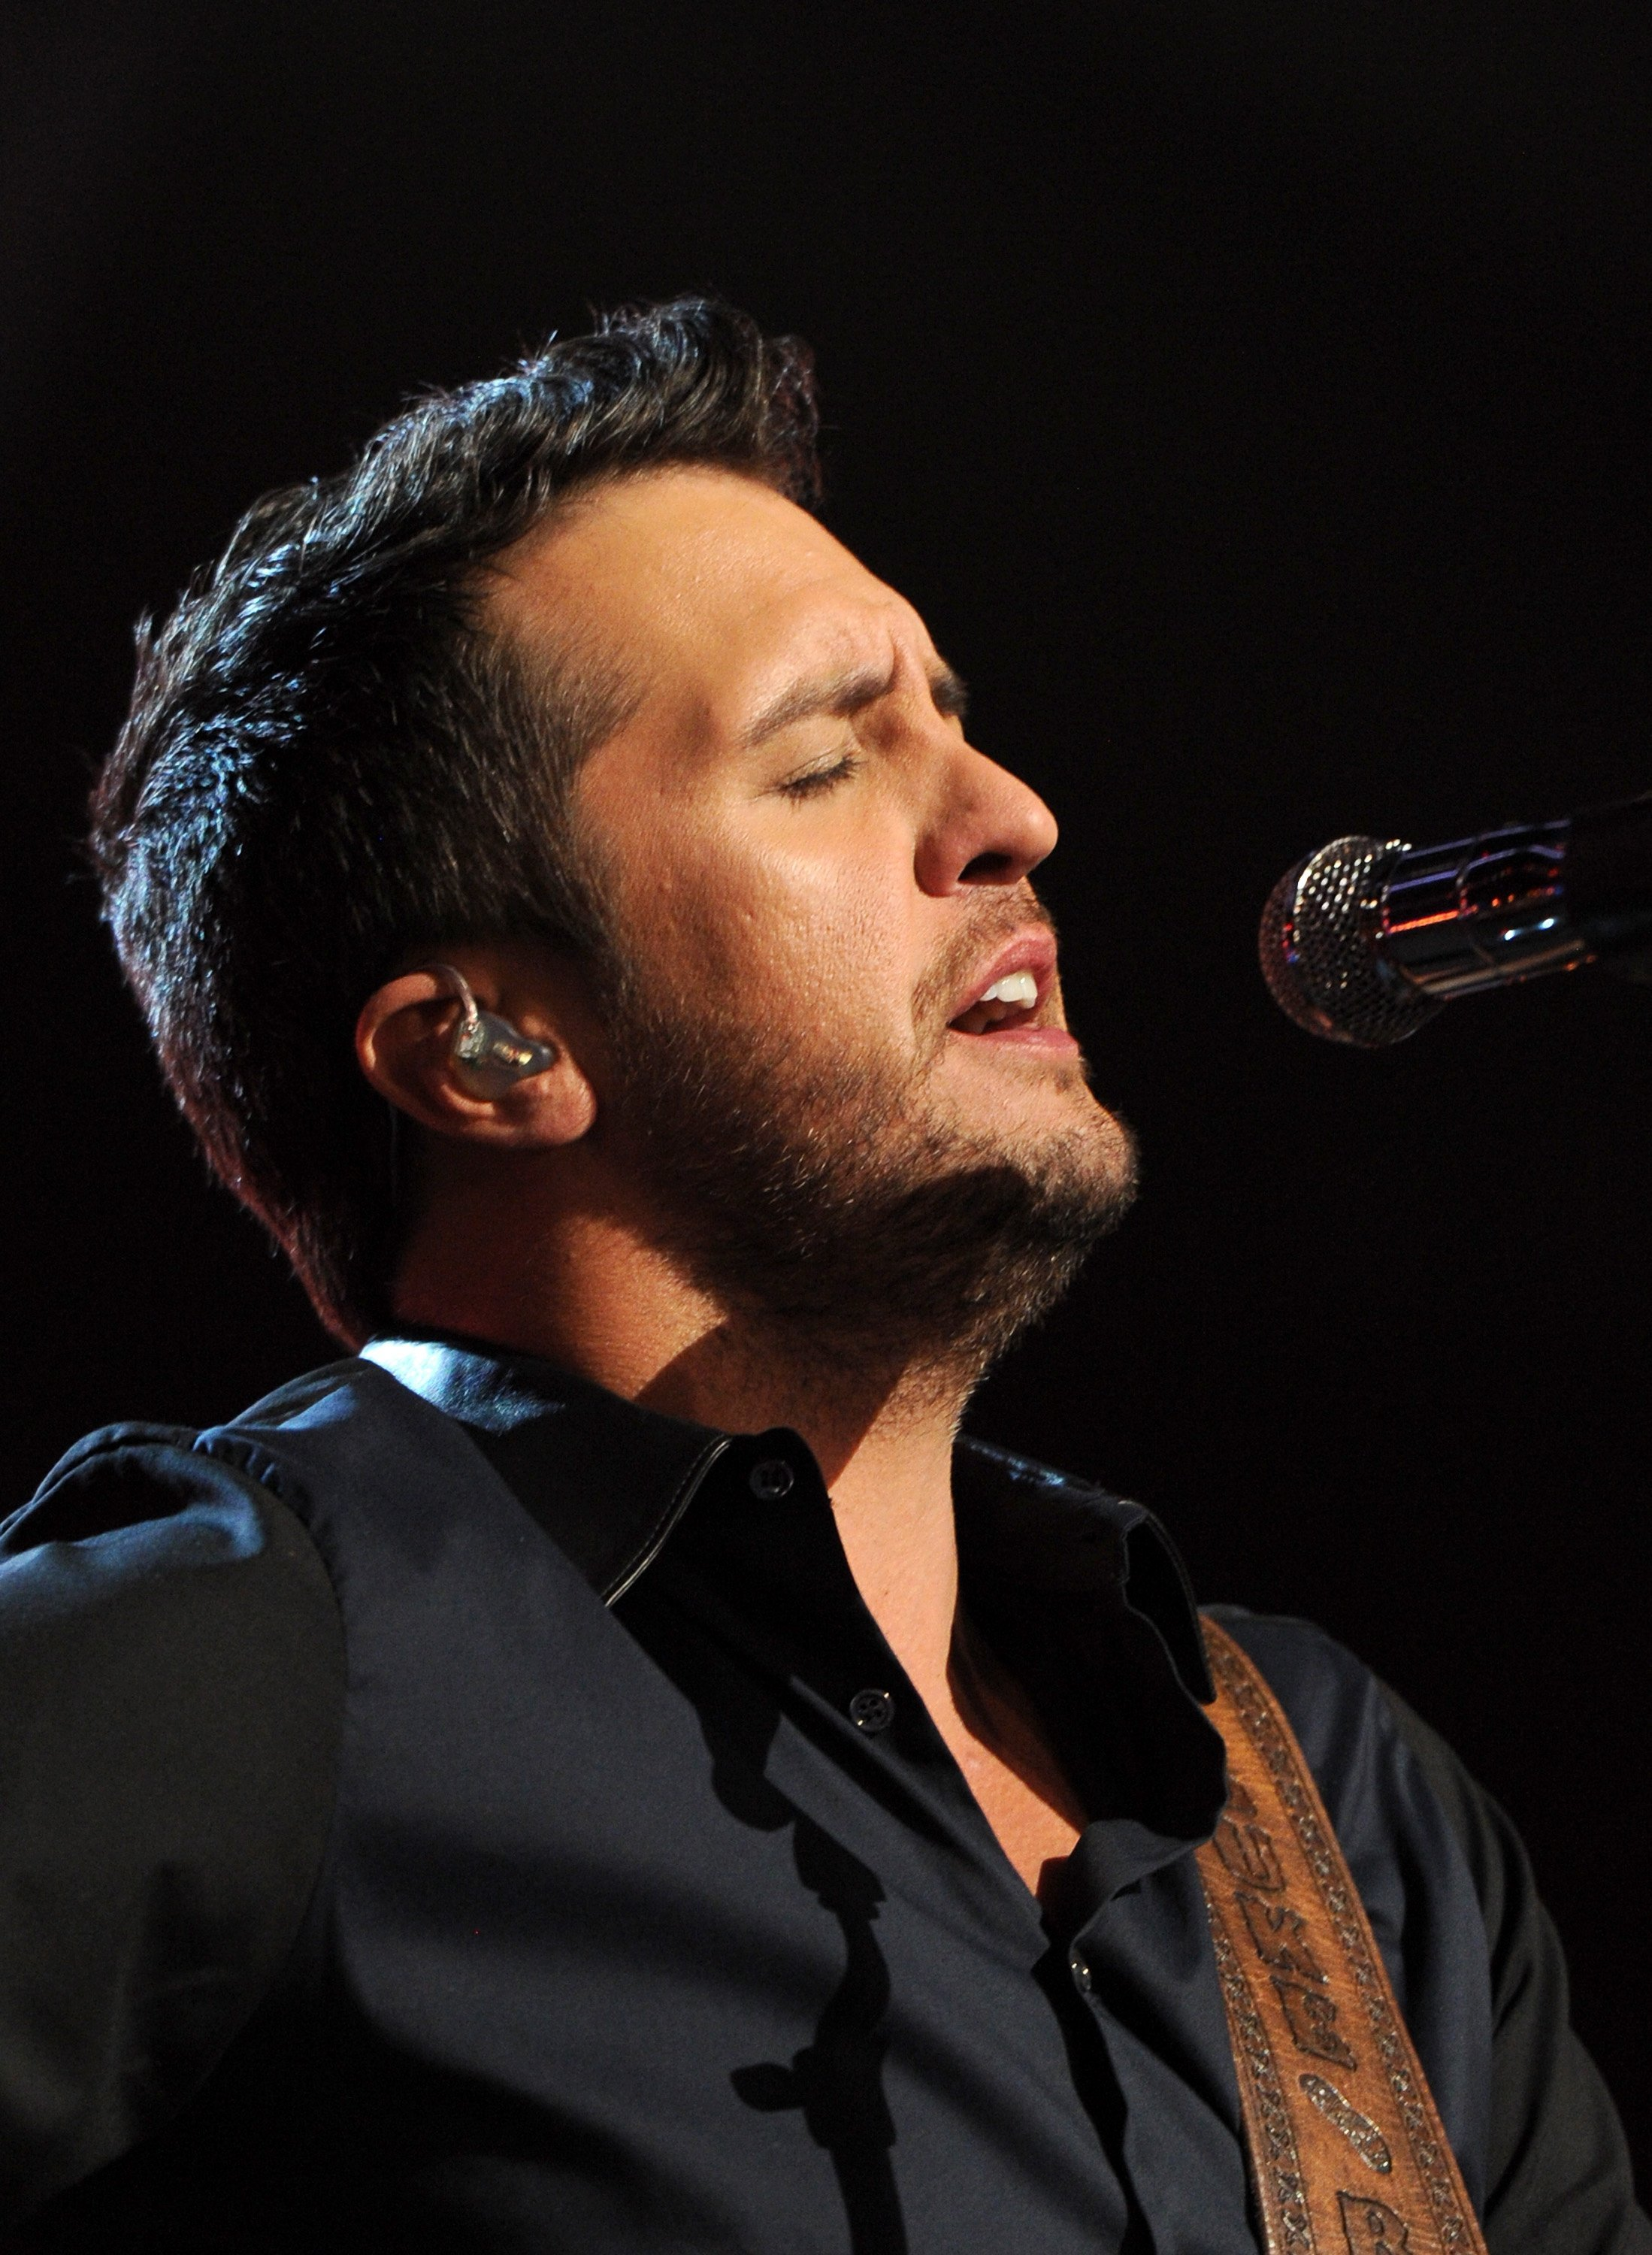 Luke Bryan, country singer, performs | Photo: Getty Images